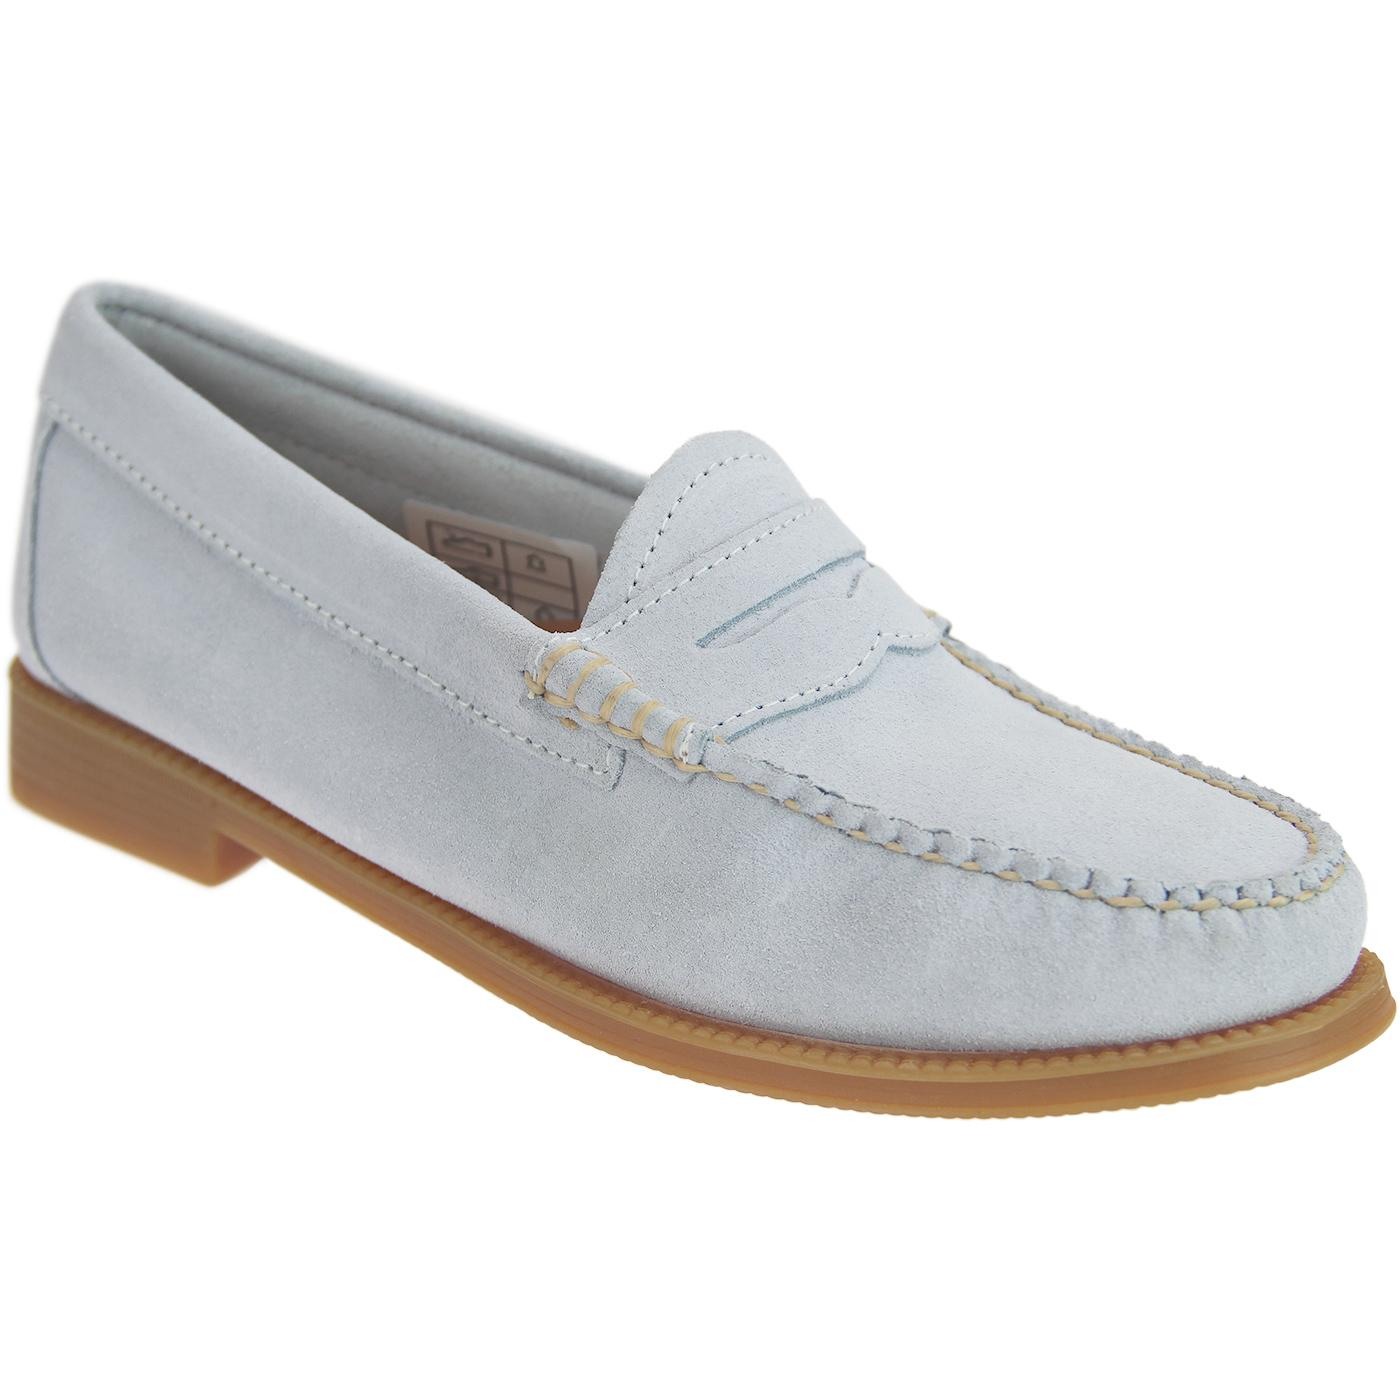 BASS WEEJUNS Women's Retro Suede Penny loafers LB